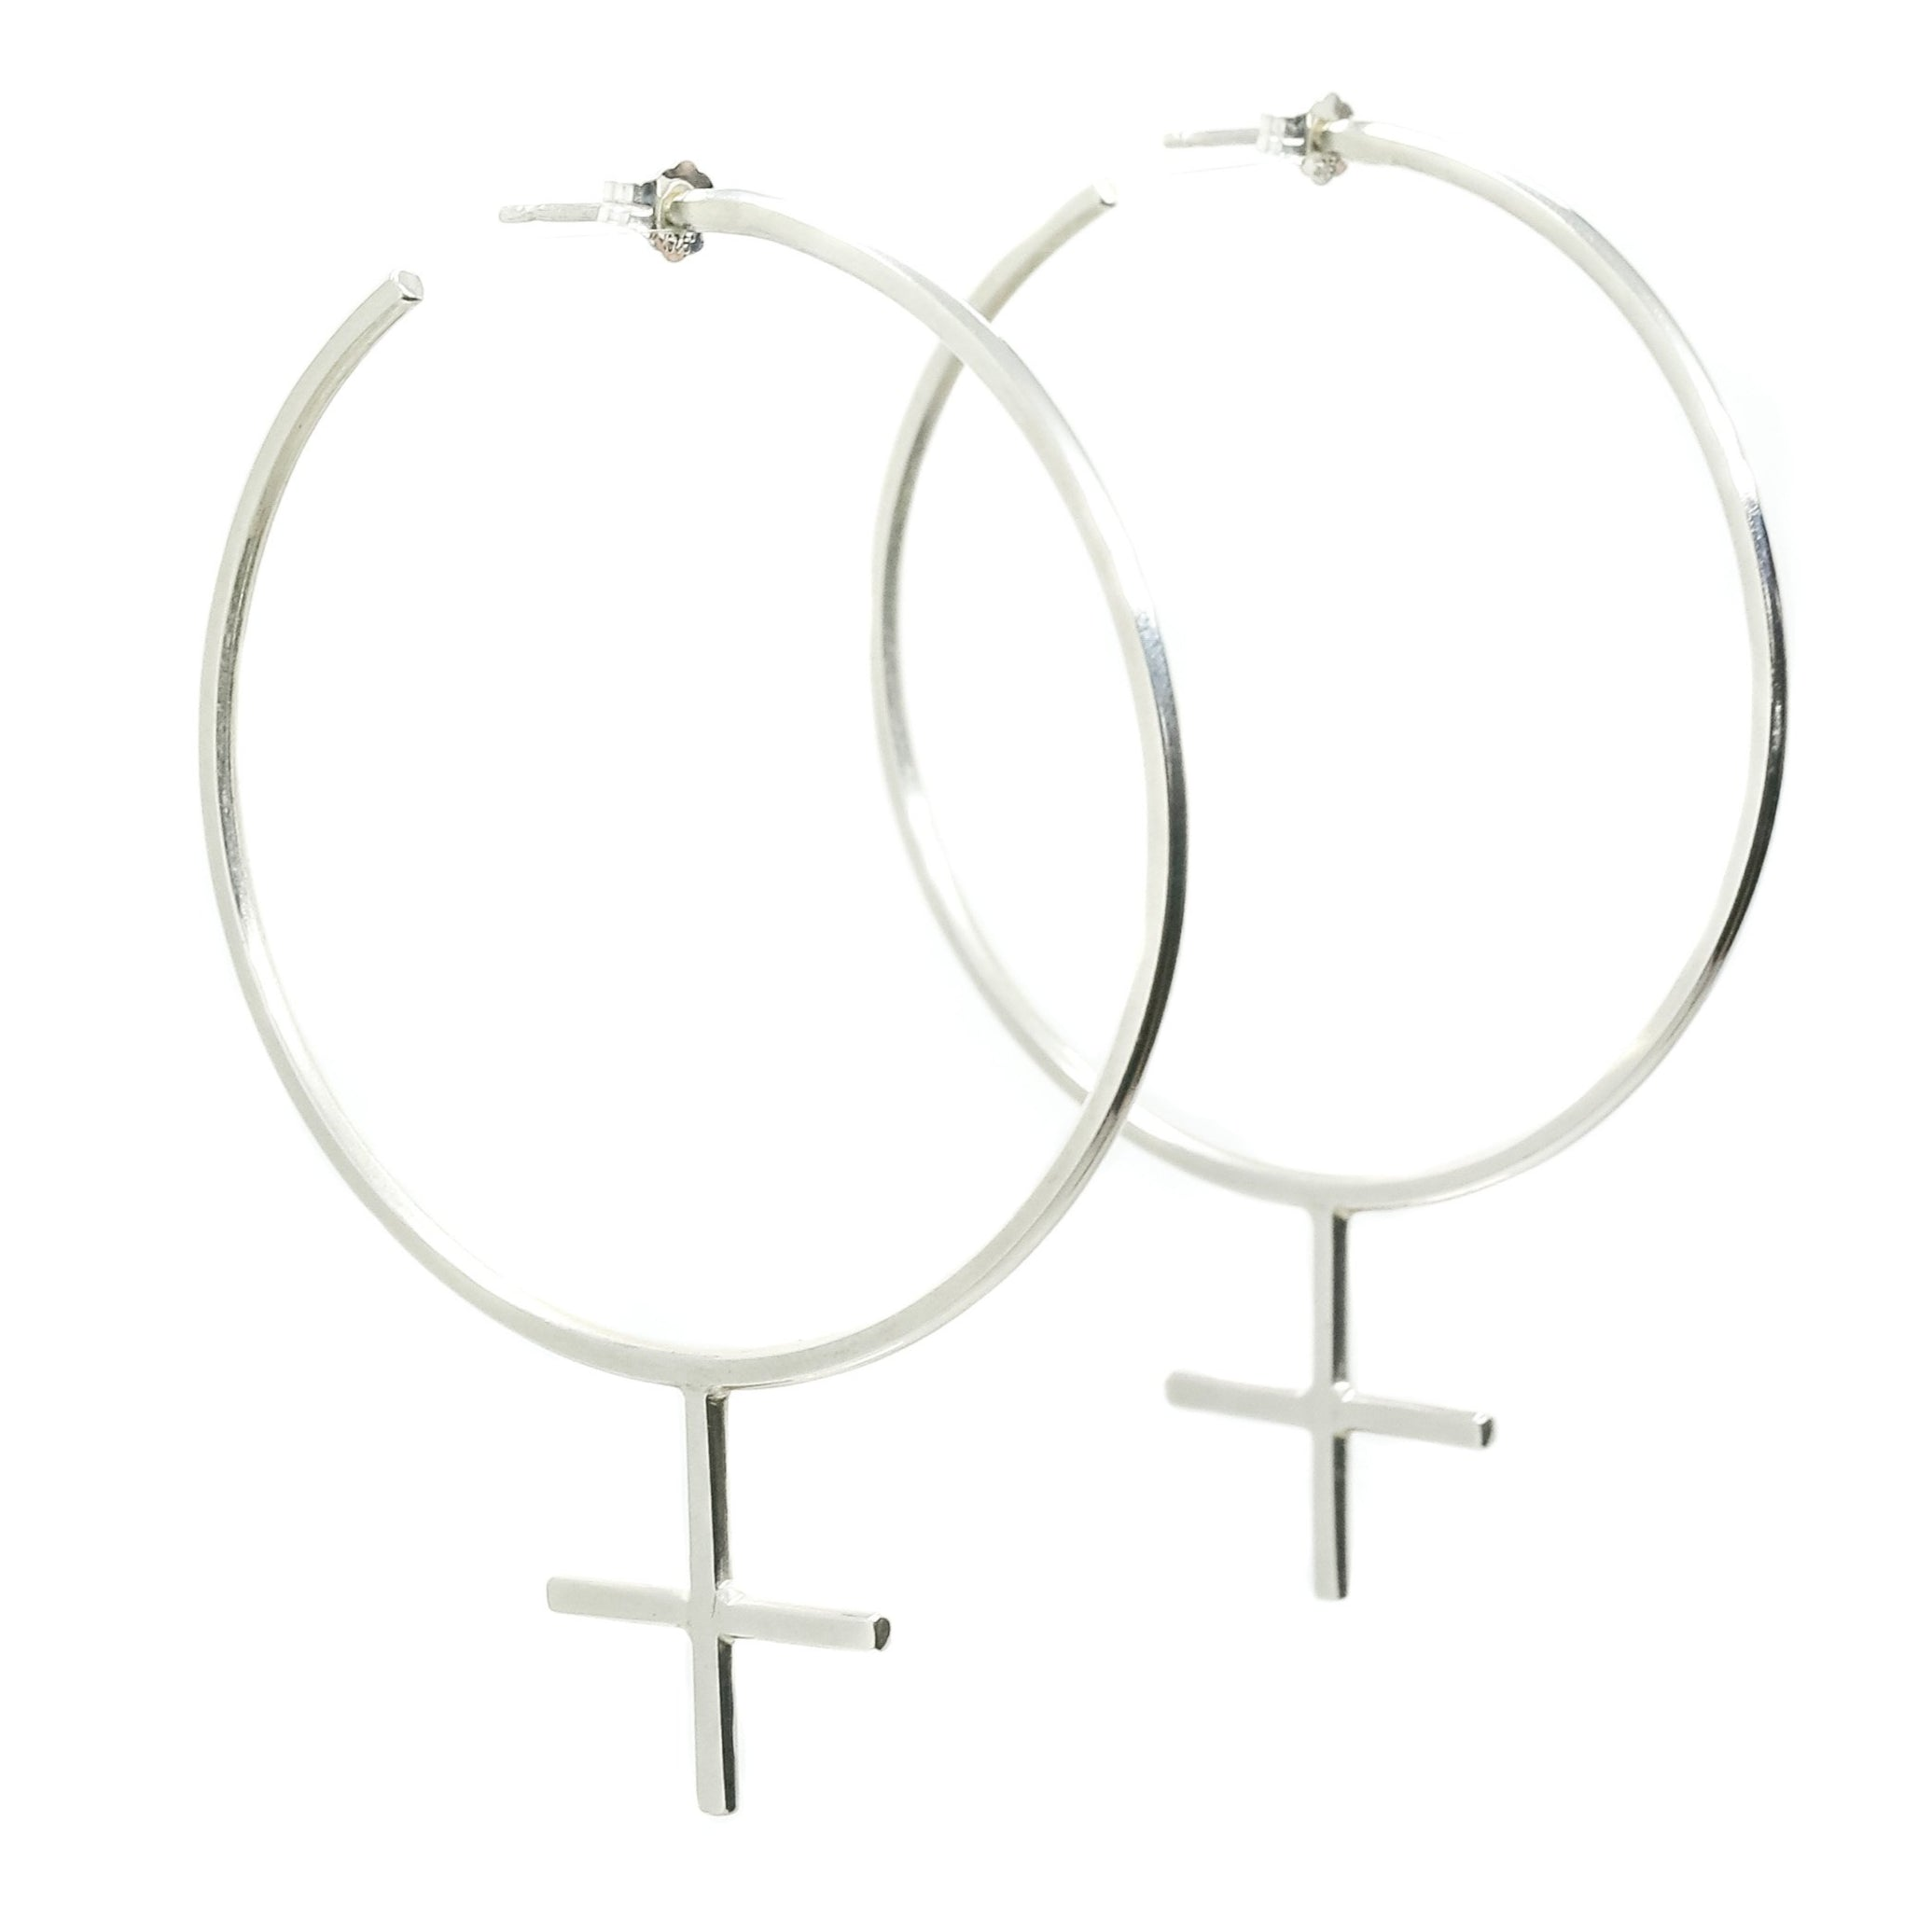 Emily Eliza Arlotte Handcrafted Fine Jewellery - Sterling Silver Venus Symbol Hoop Earrings Feminine Feminism Feminist Female Boho Bohemian Witchy Style Fashion